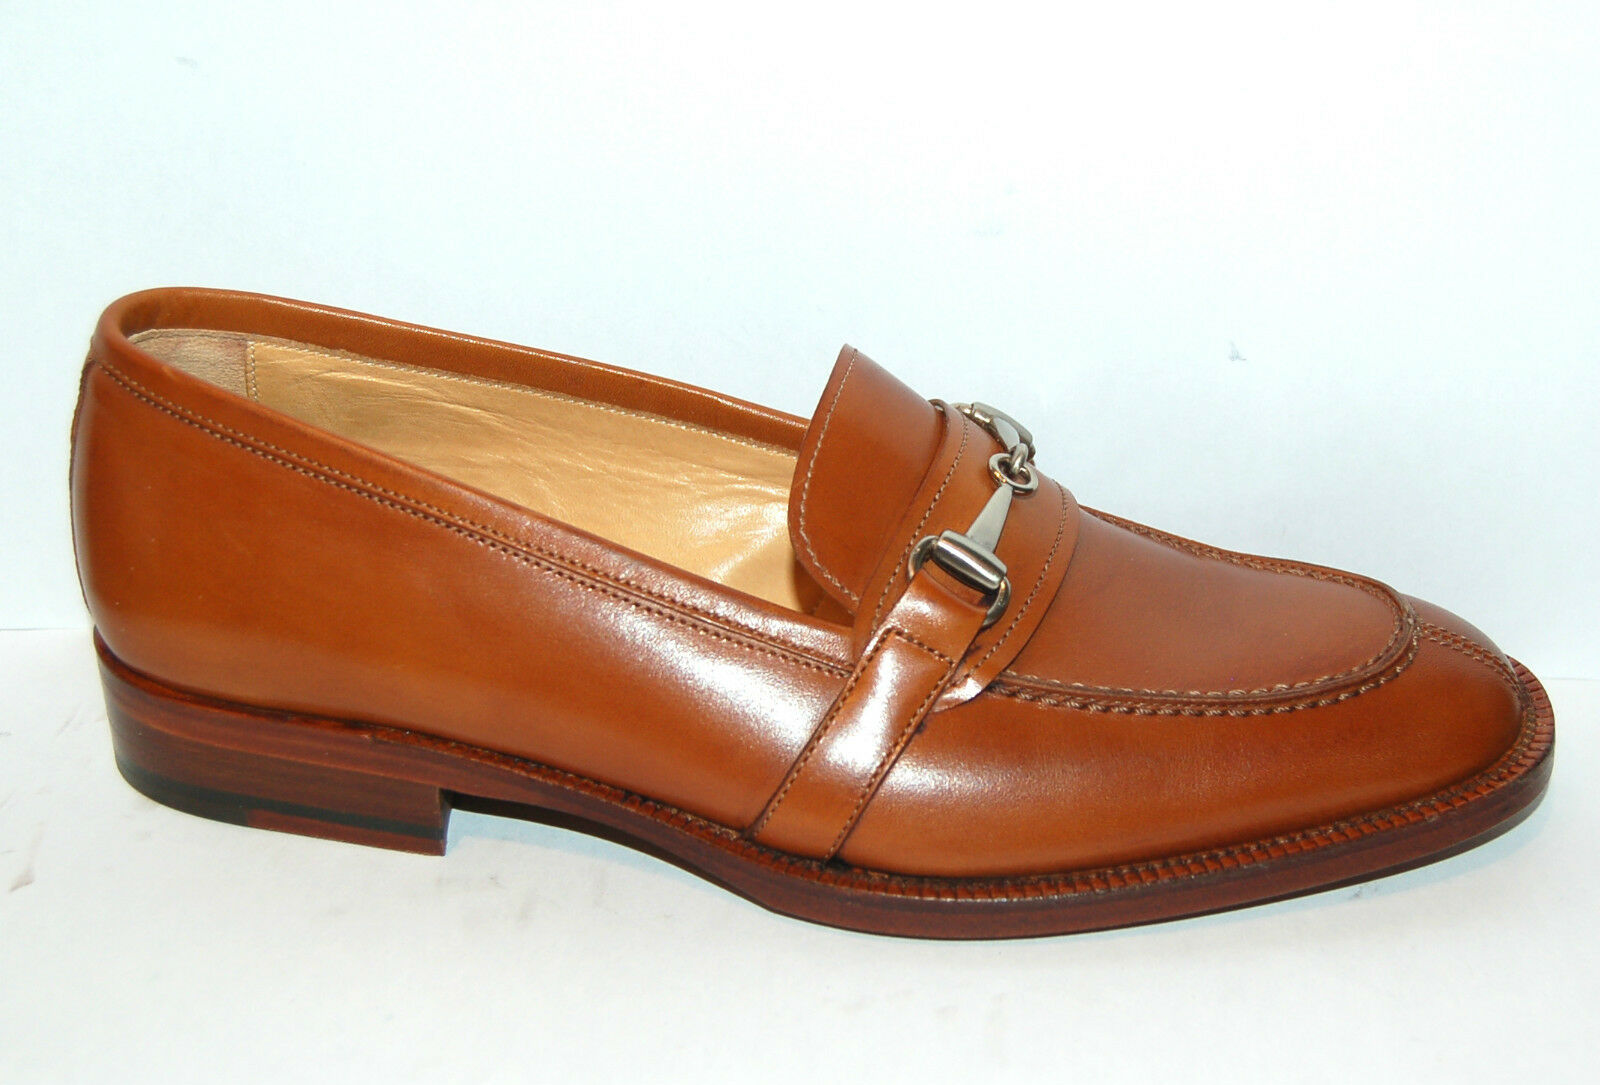 WOMAN - 37½eu - PENNY LOAFER WITH CLAMP - CALF TAN - LEATHER SOLE